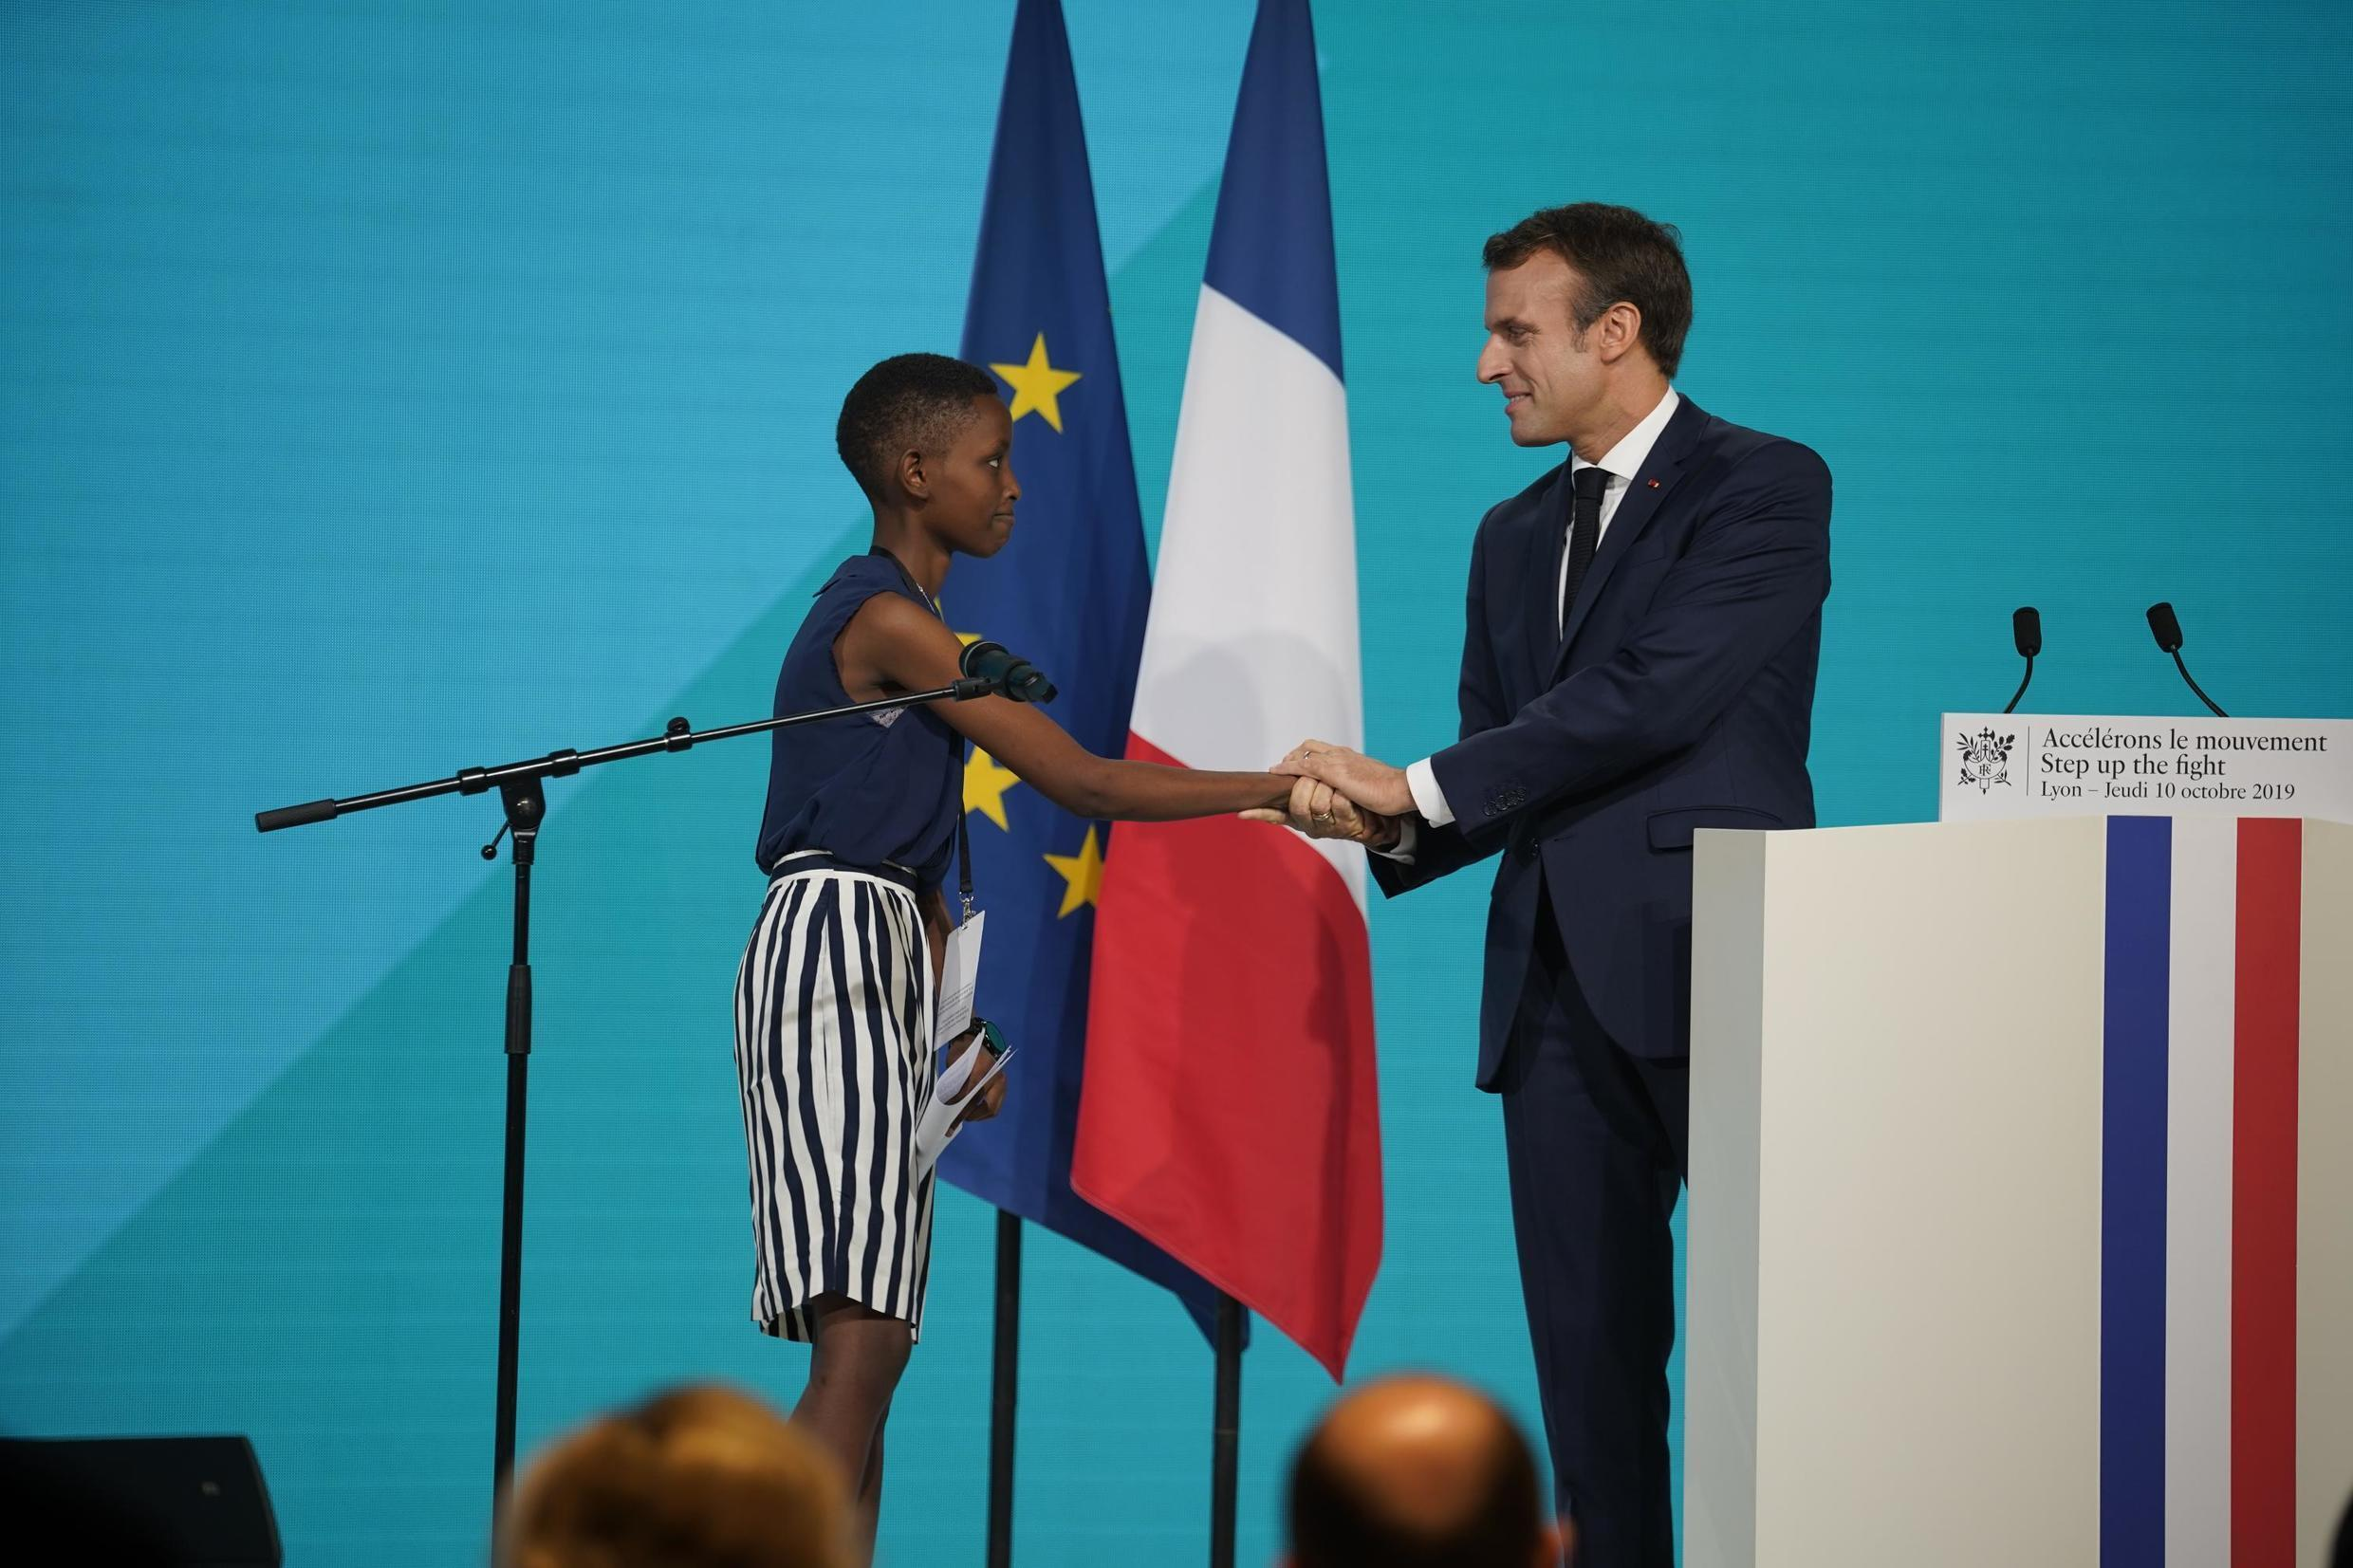 Amanda Dushime from Burundi with Emmanuel Macron, President of France, at the Sixth Global Fund Replenishment Conference in Lyon, 10 October 2019.